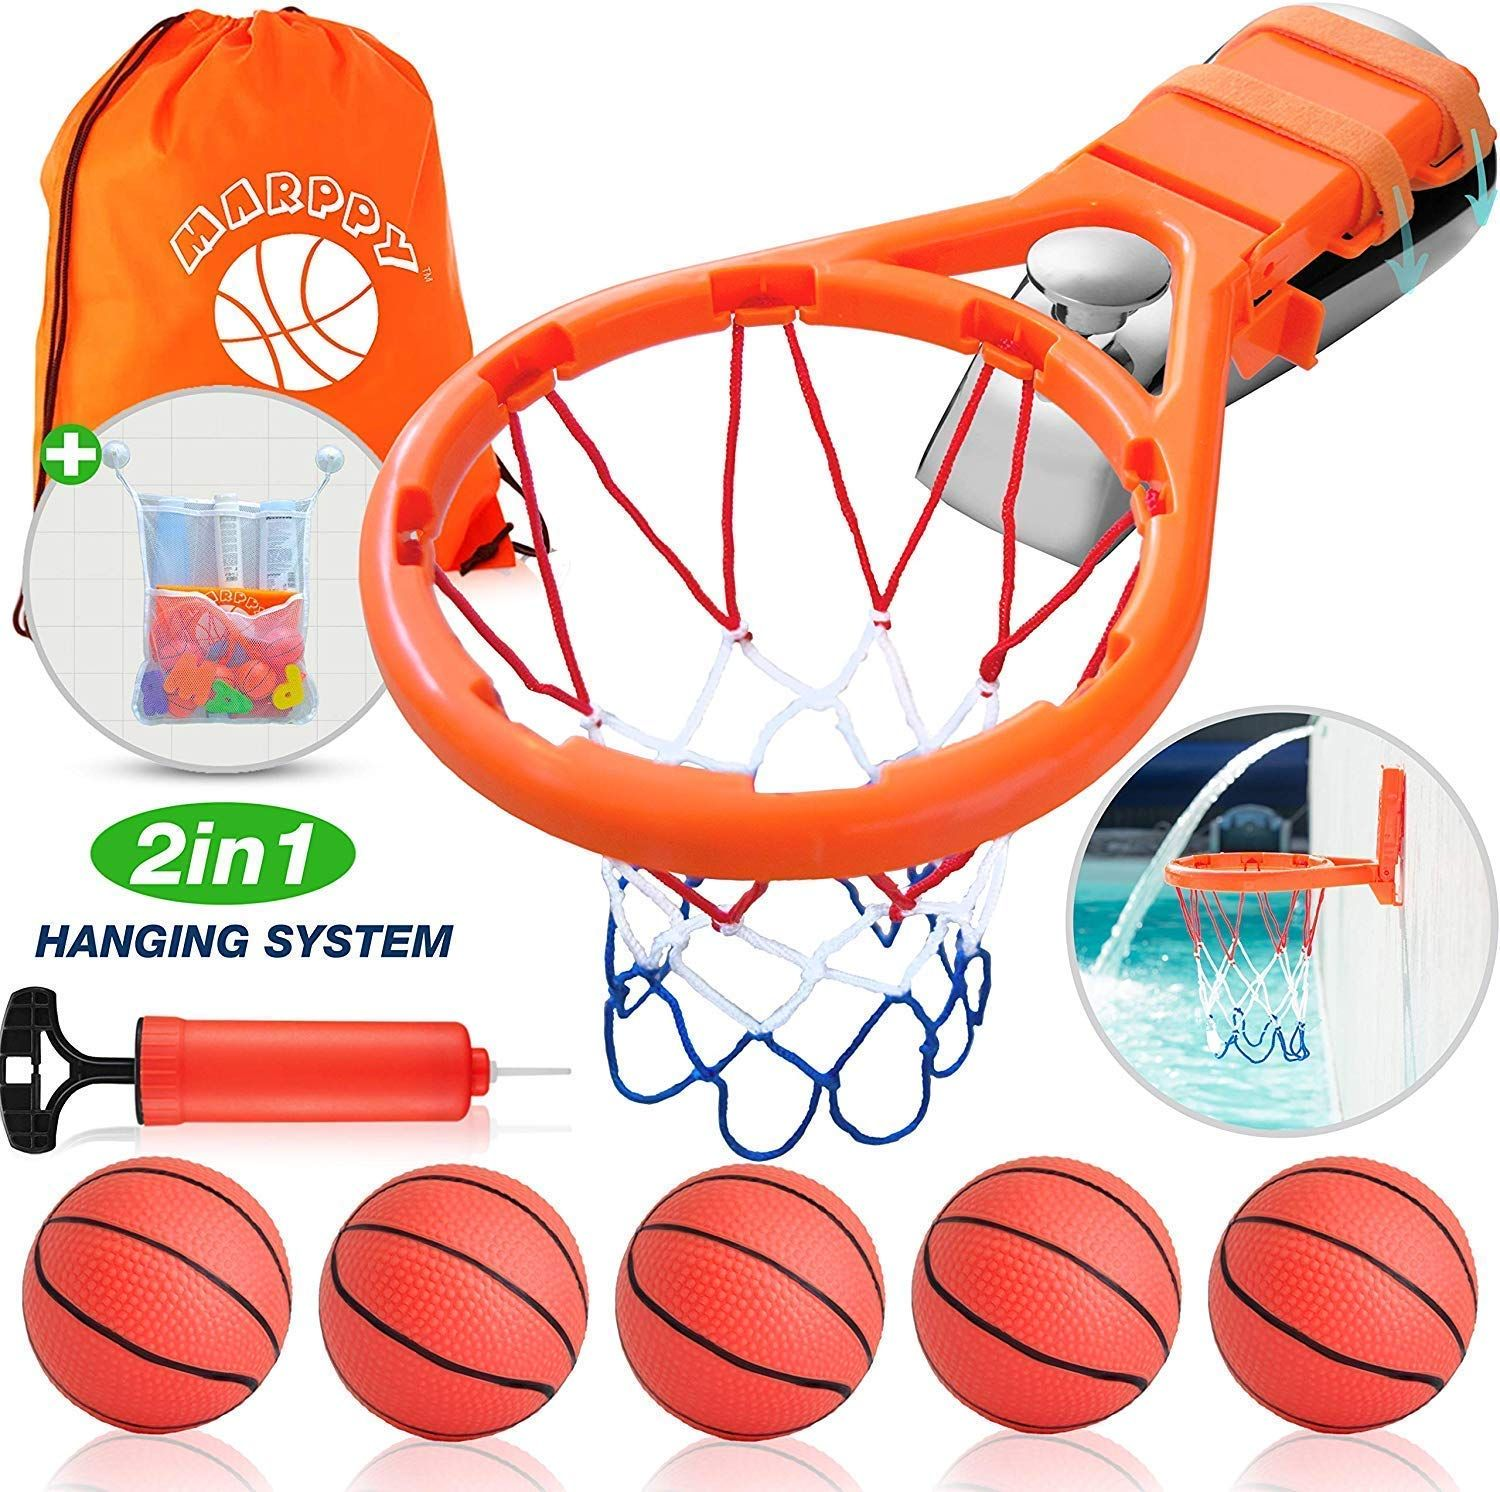 Bath Toy Basketball Hoop And 5 Balls Playset 2 In 1 Design Bathtub Basketball Hoop For Kids Bathroom Games And Fun Bath In 2020 Bath Toys Playset Kids Bathroom